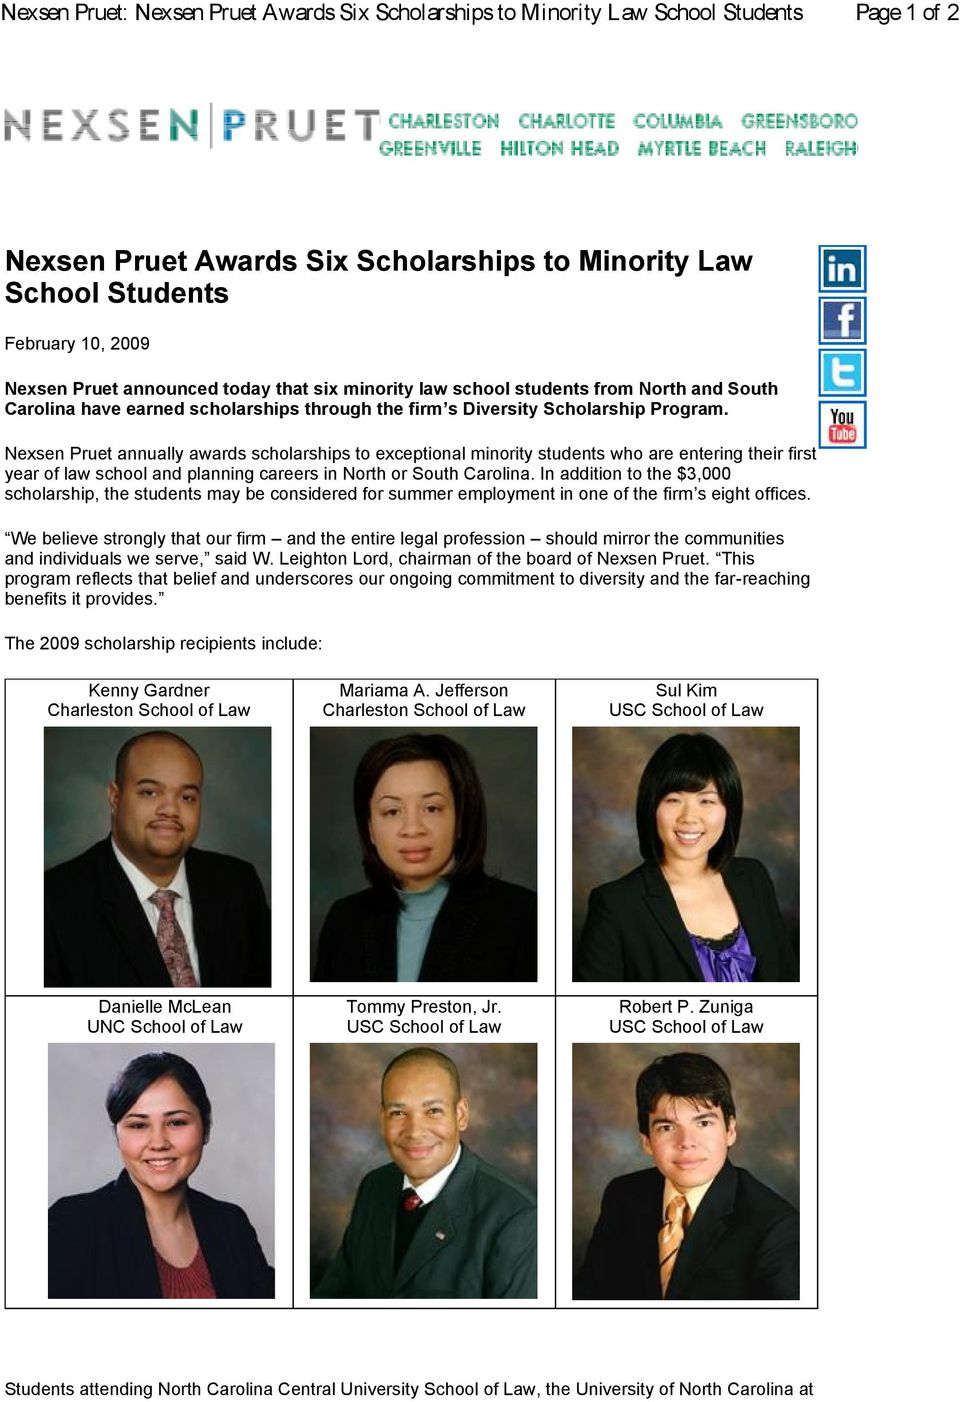 Nexsen Pruet annually awards scholarships to exceptional minority students who are entering their first year of law school and planning careers in North or South Carolina.